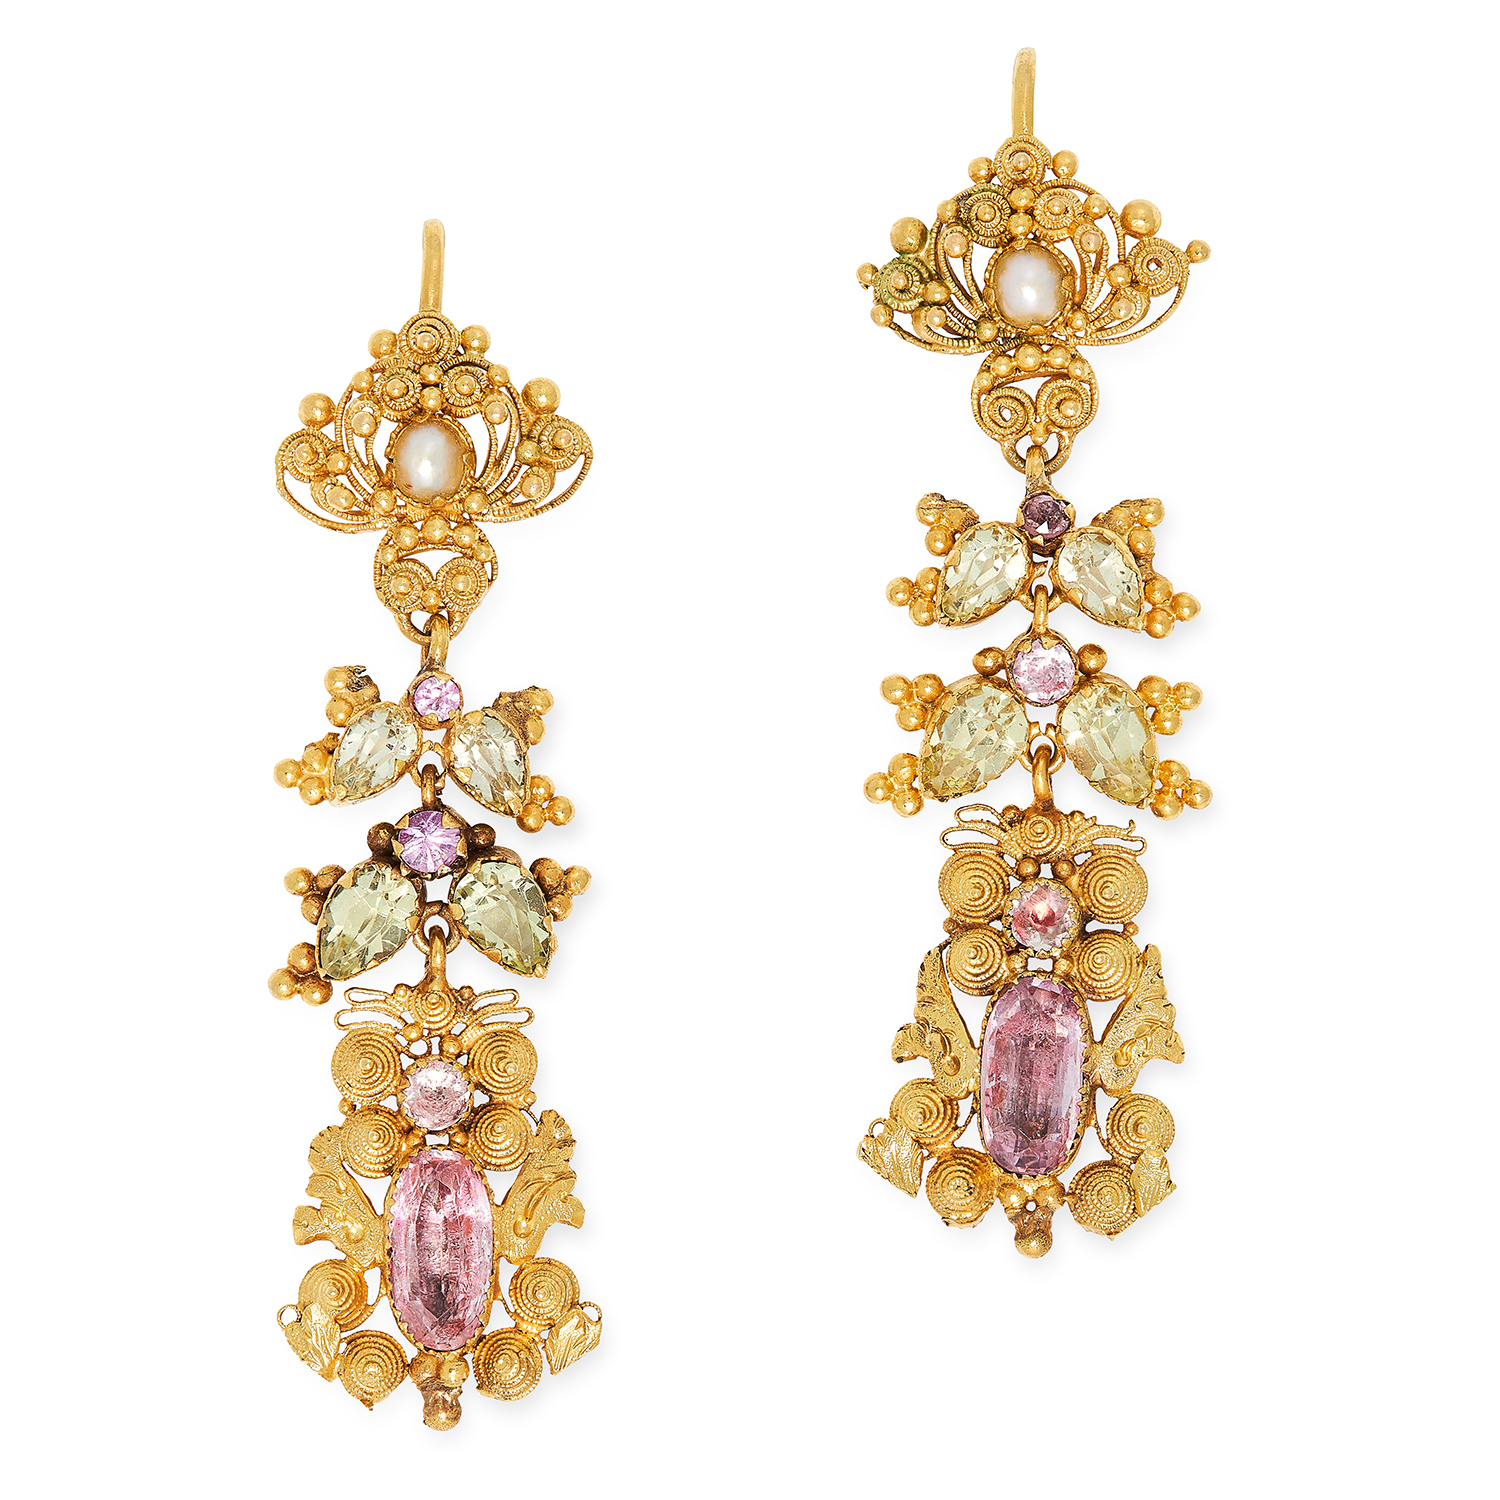 Los 12 - ANTIQUE GEORGIAN PINK TOPAZ, CHRYSOBERYL AND PEARL EARRINGS in foliate design, set with pearls, pear